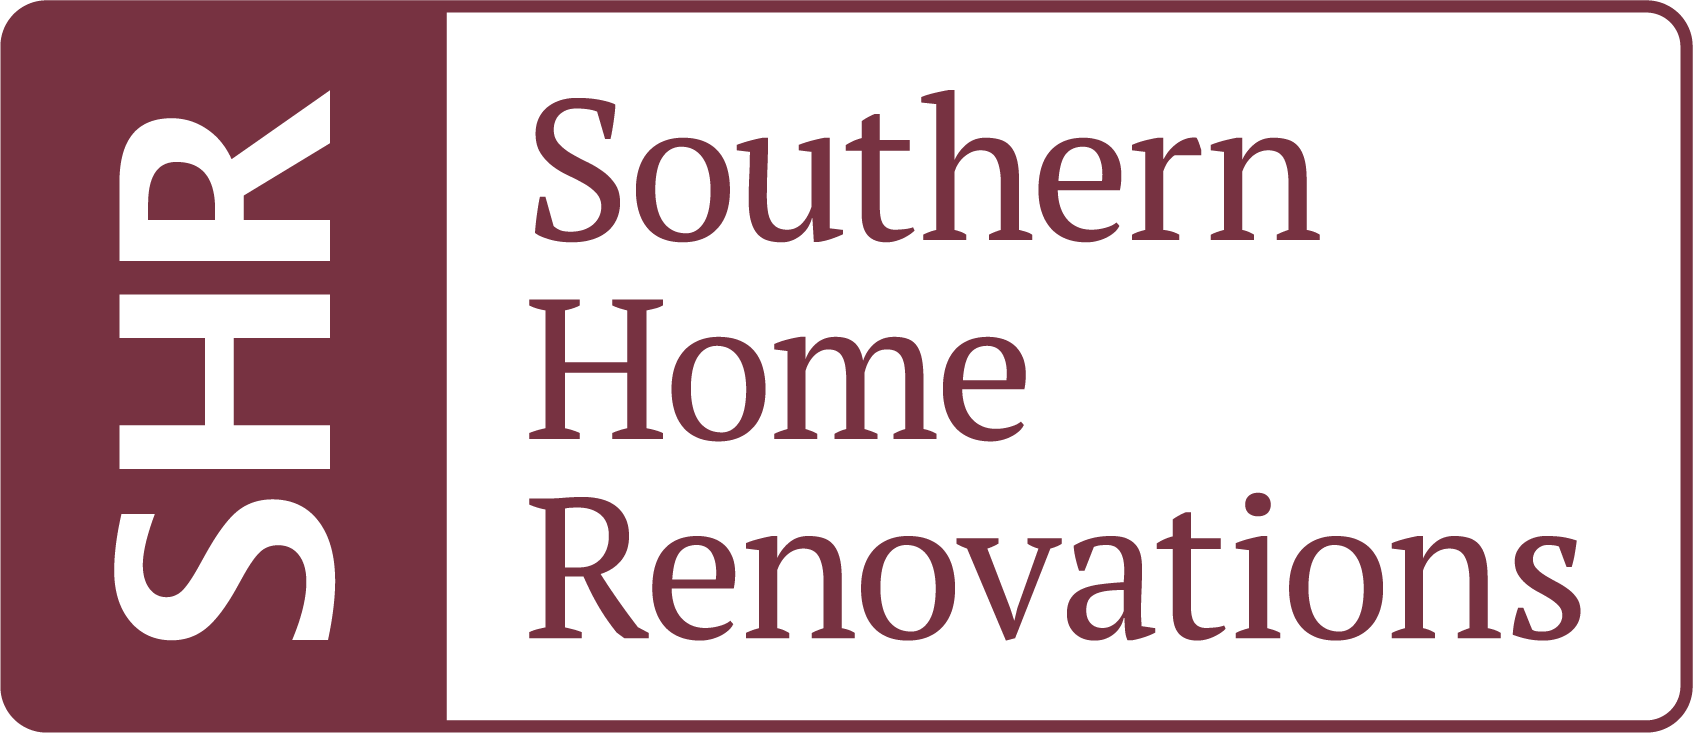 Southern Home Renovations